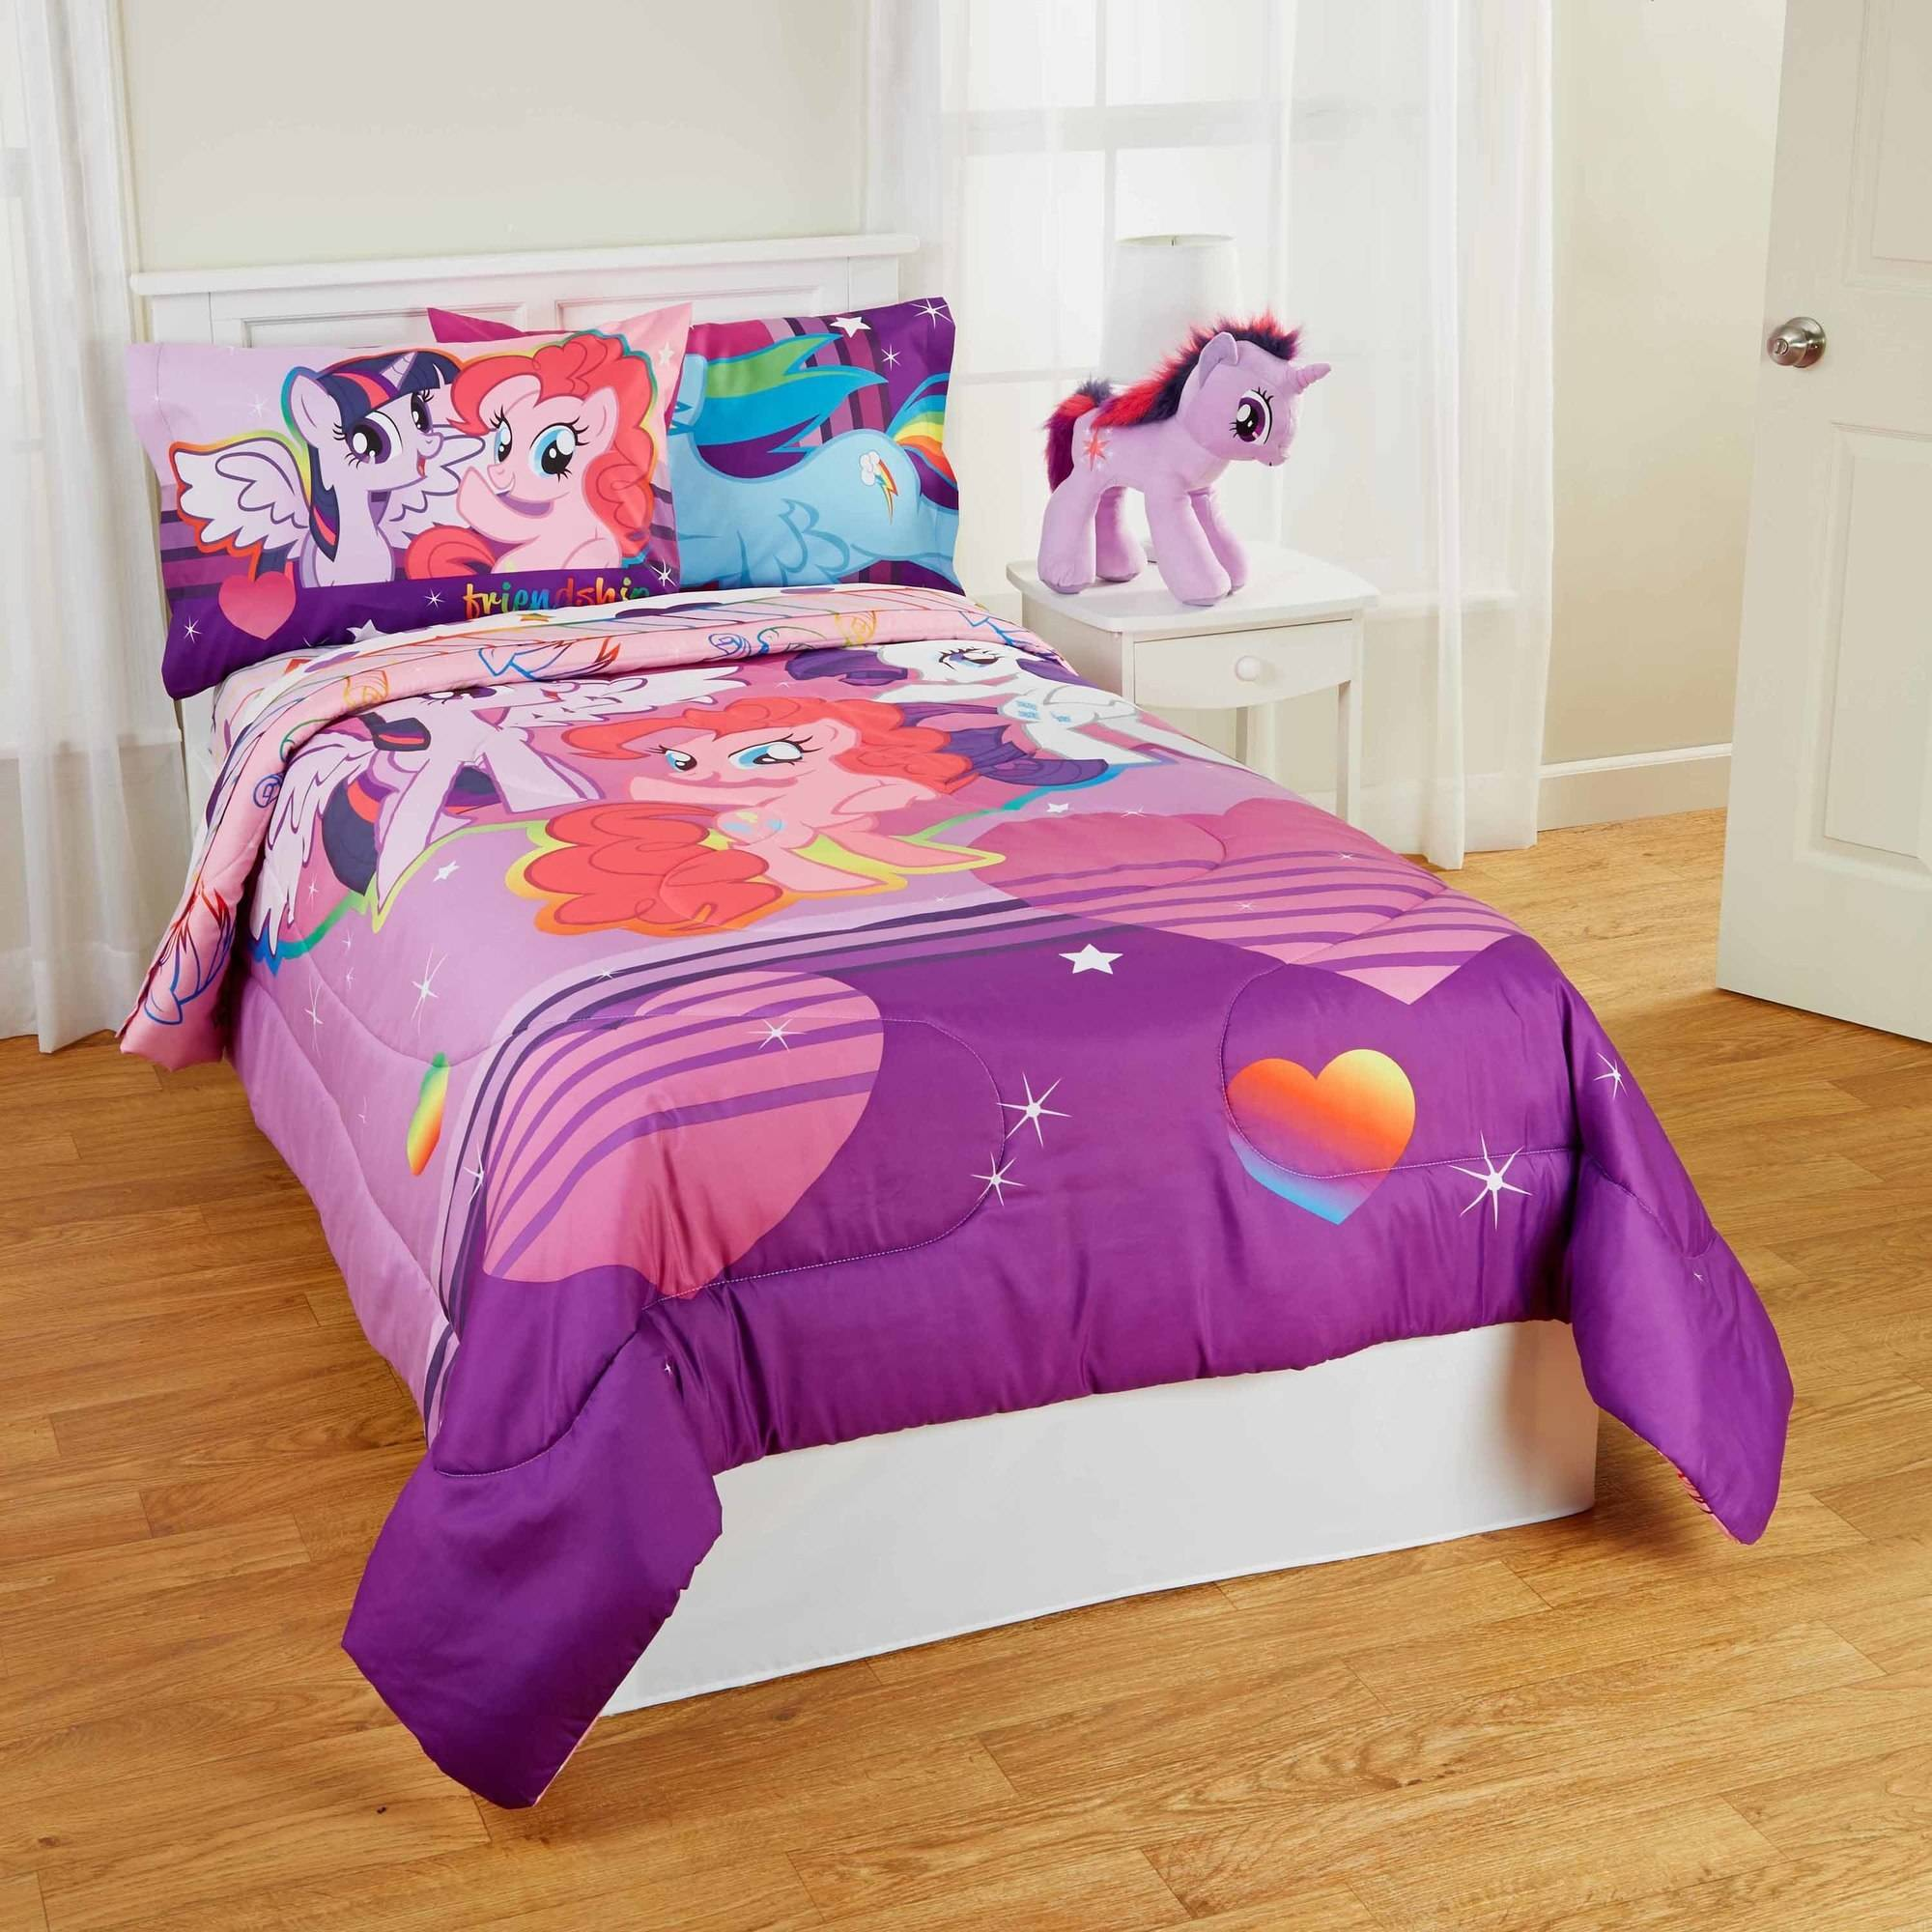 Attractive My Little Pony Pony Field Kids Bedding Bed In Bag Bedding Set